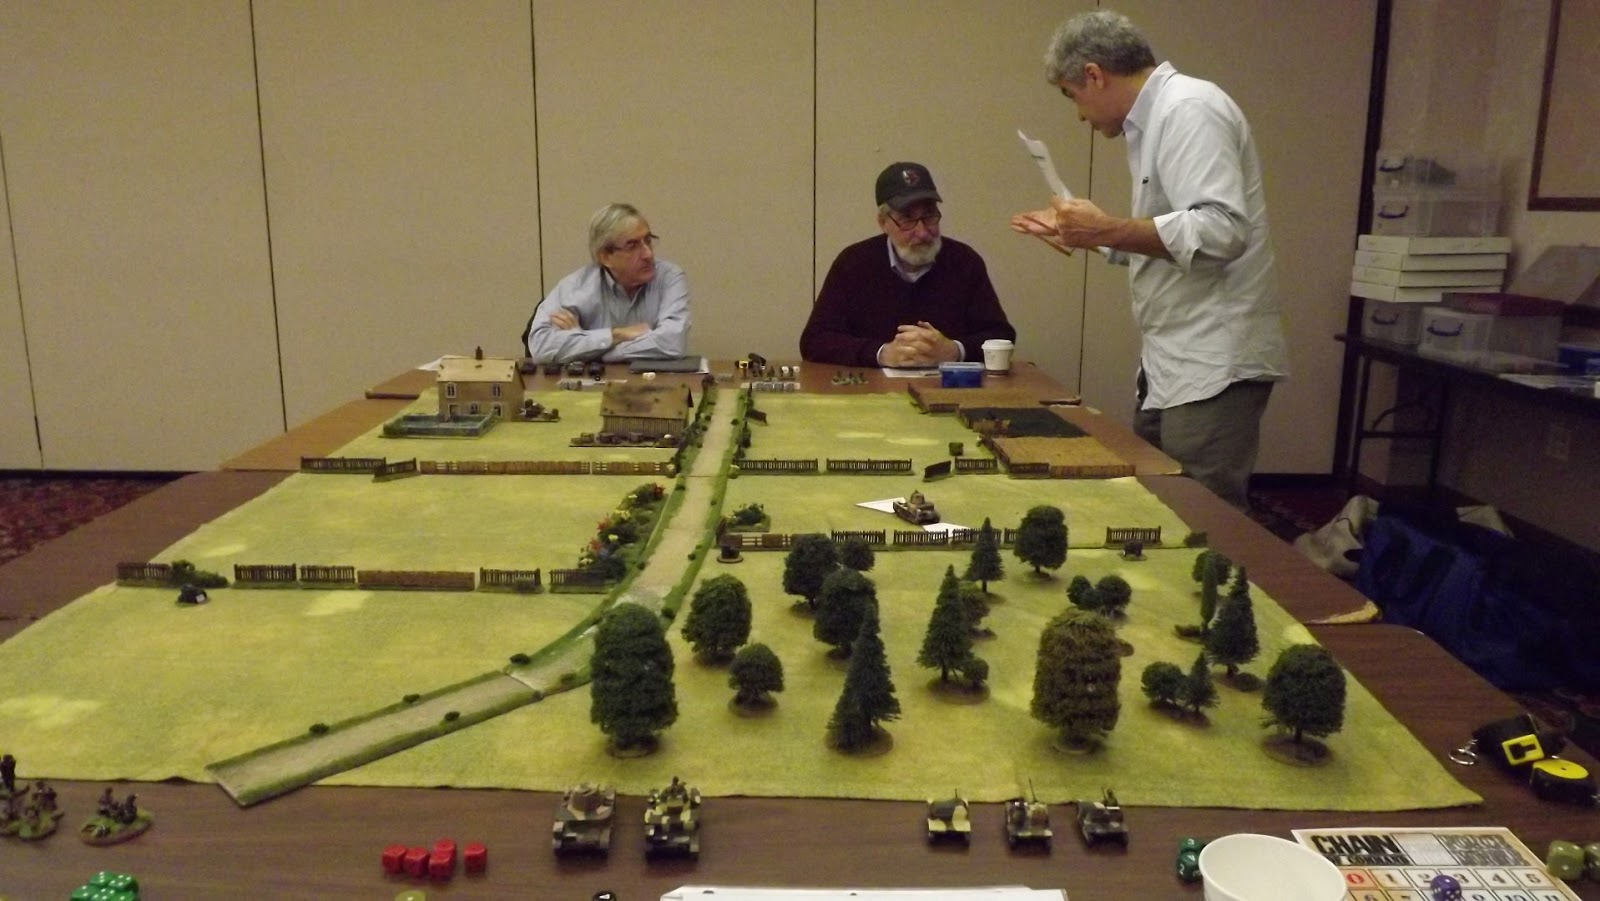 AJ's Wargaming Blog: Northern Conspiracy January 2018 Game Night